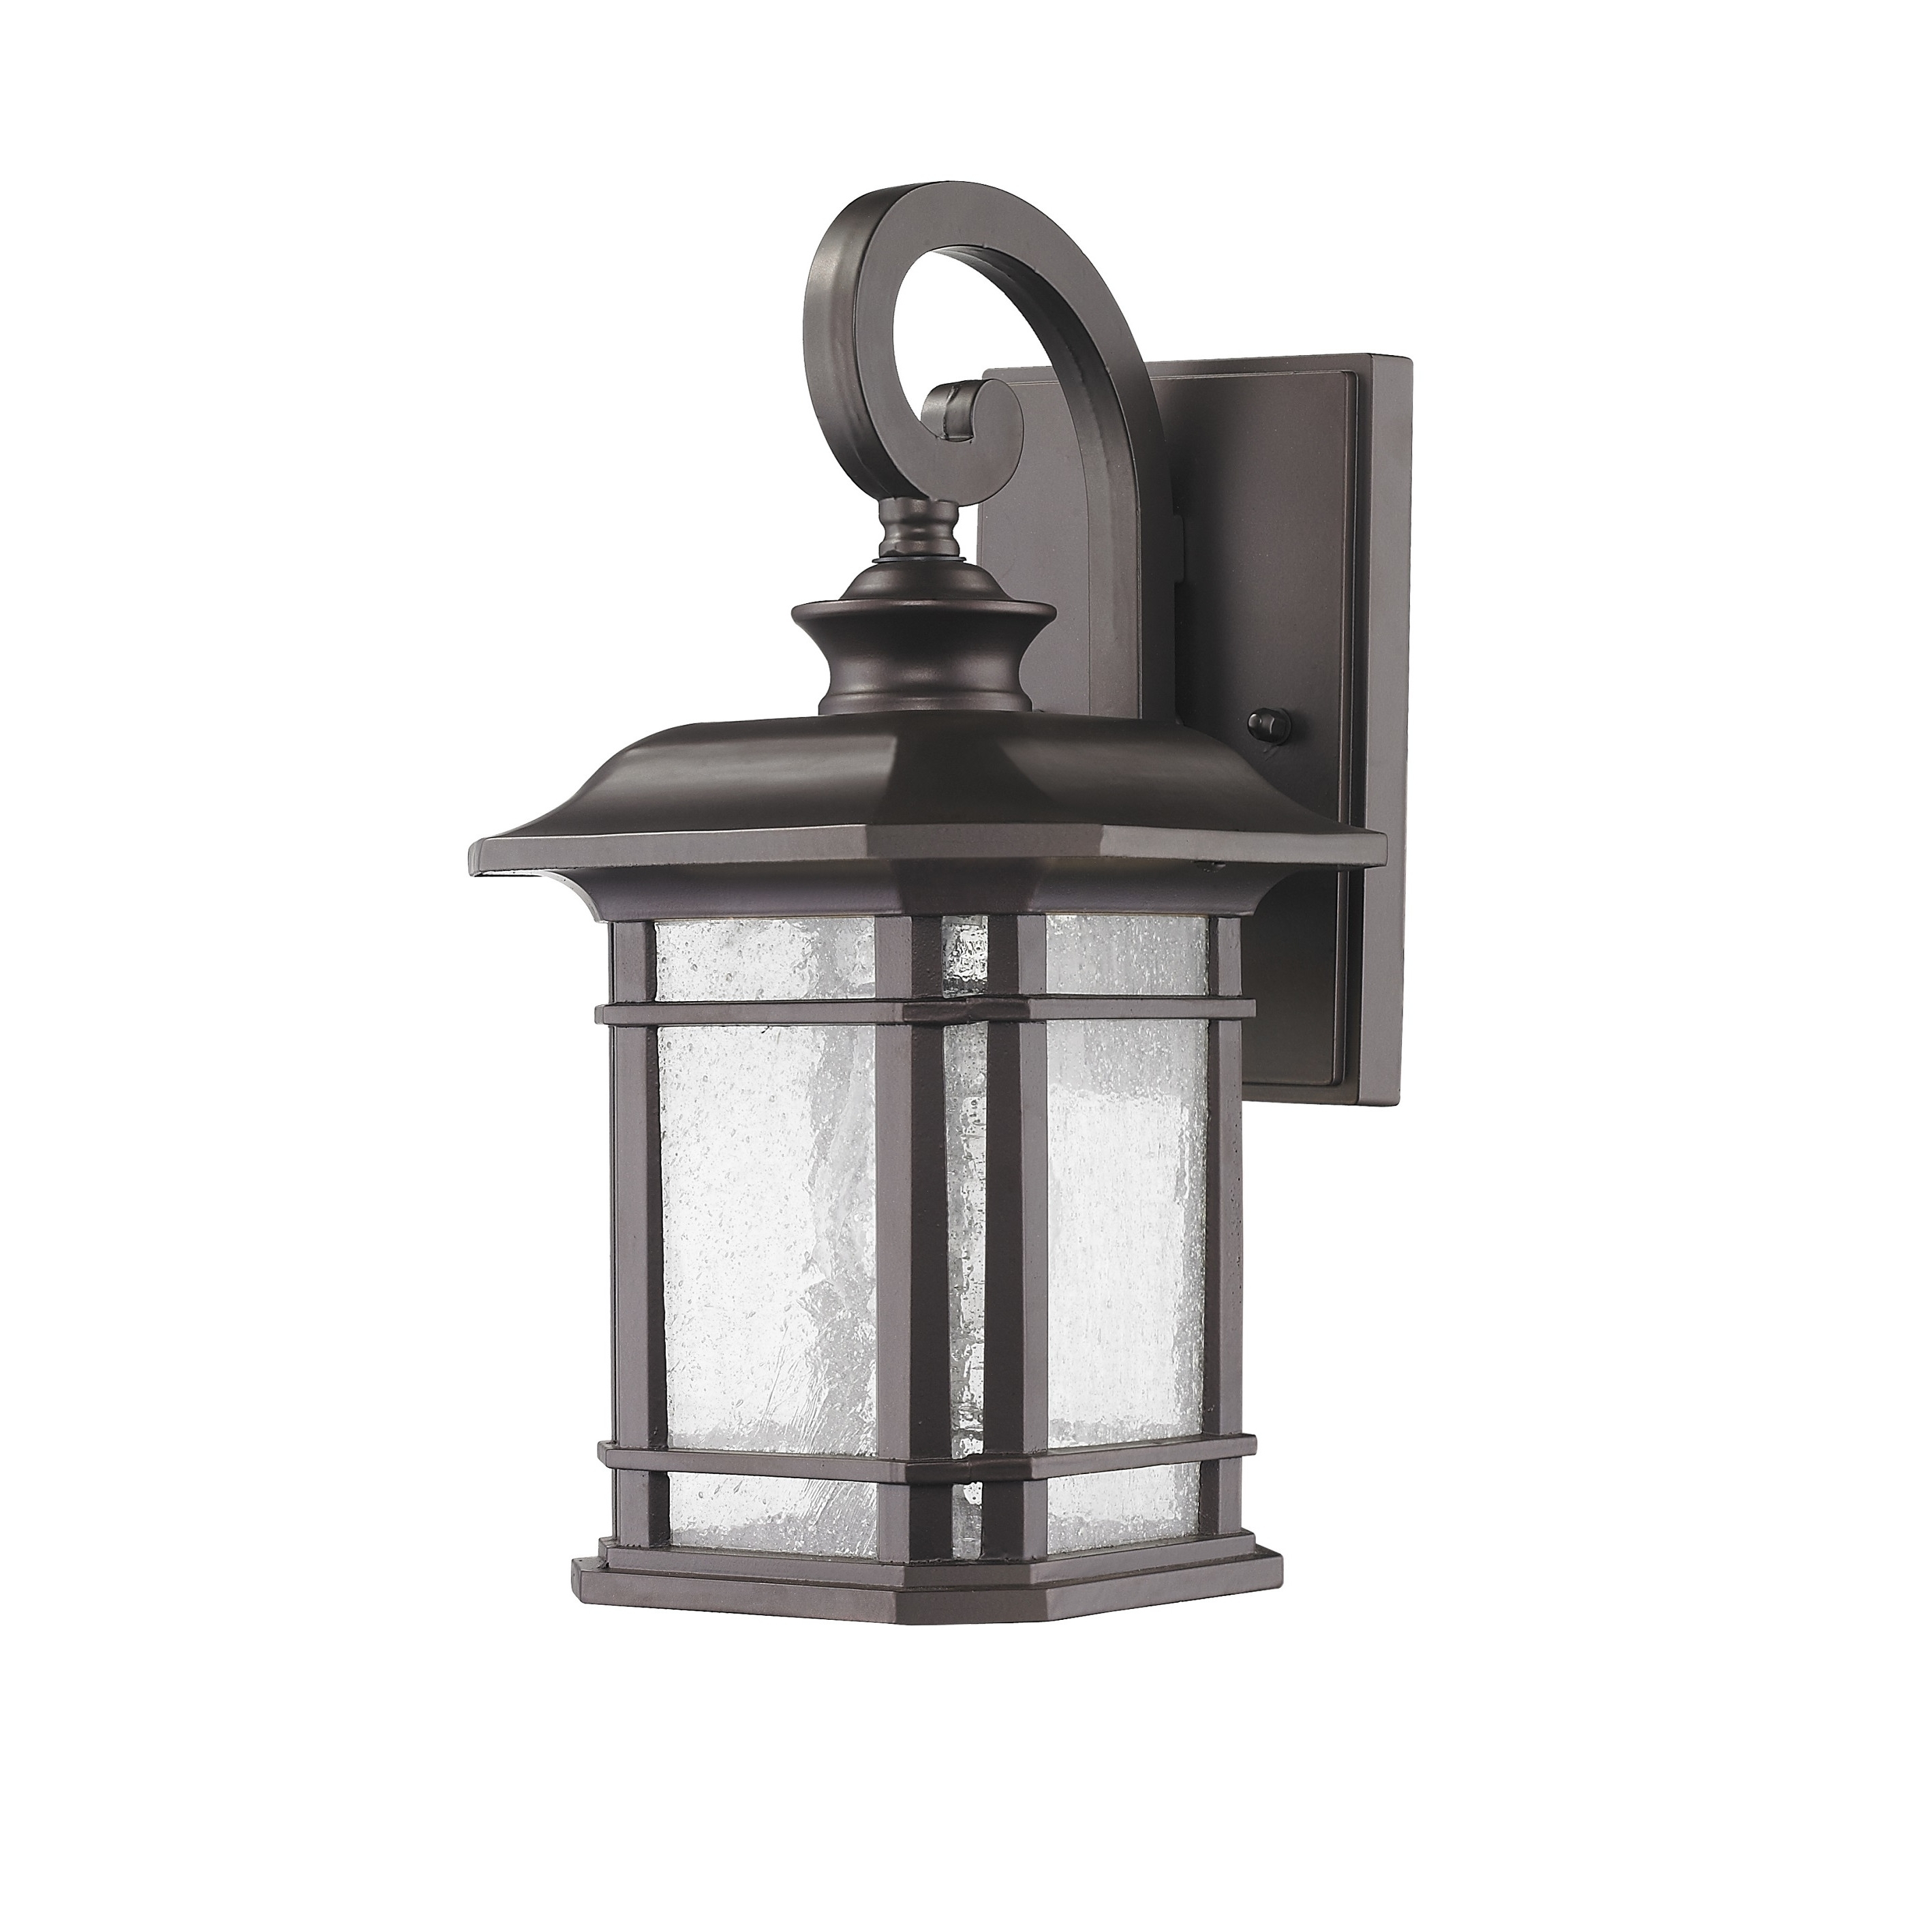 Well Liked Wayfair Landscape Lighting For Mini Garden For Decorations The Wallmounted Outdoor Wall Light Fixtures ~ Loversiq (View 19 of 20)